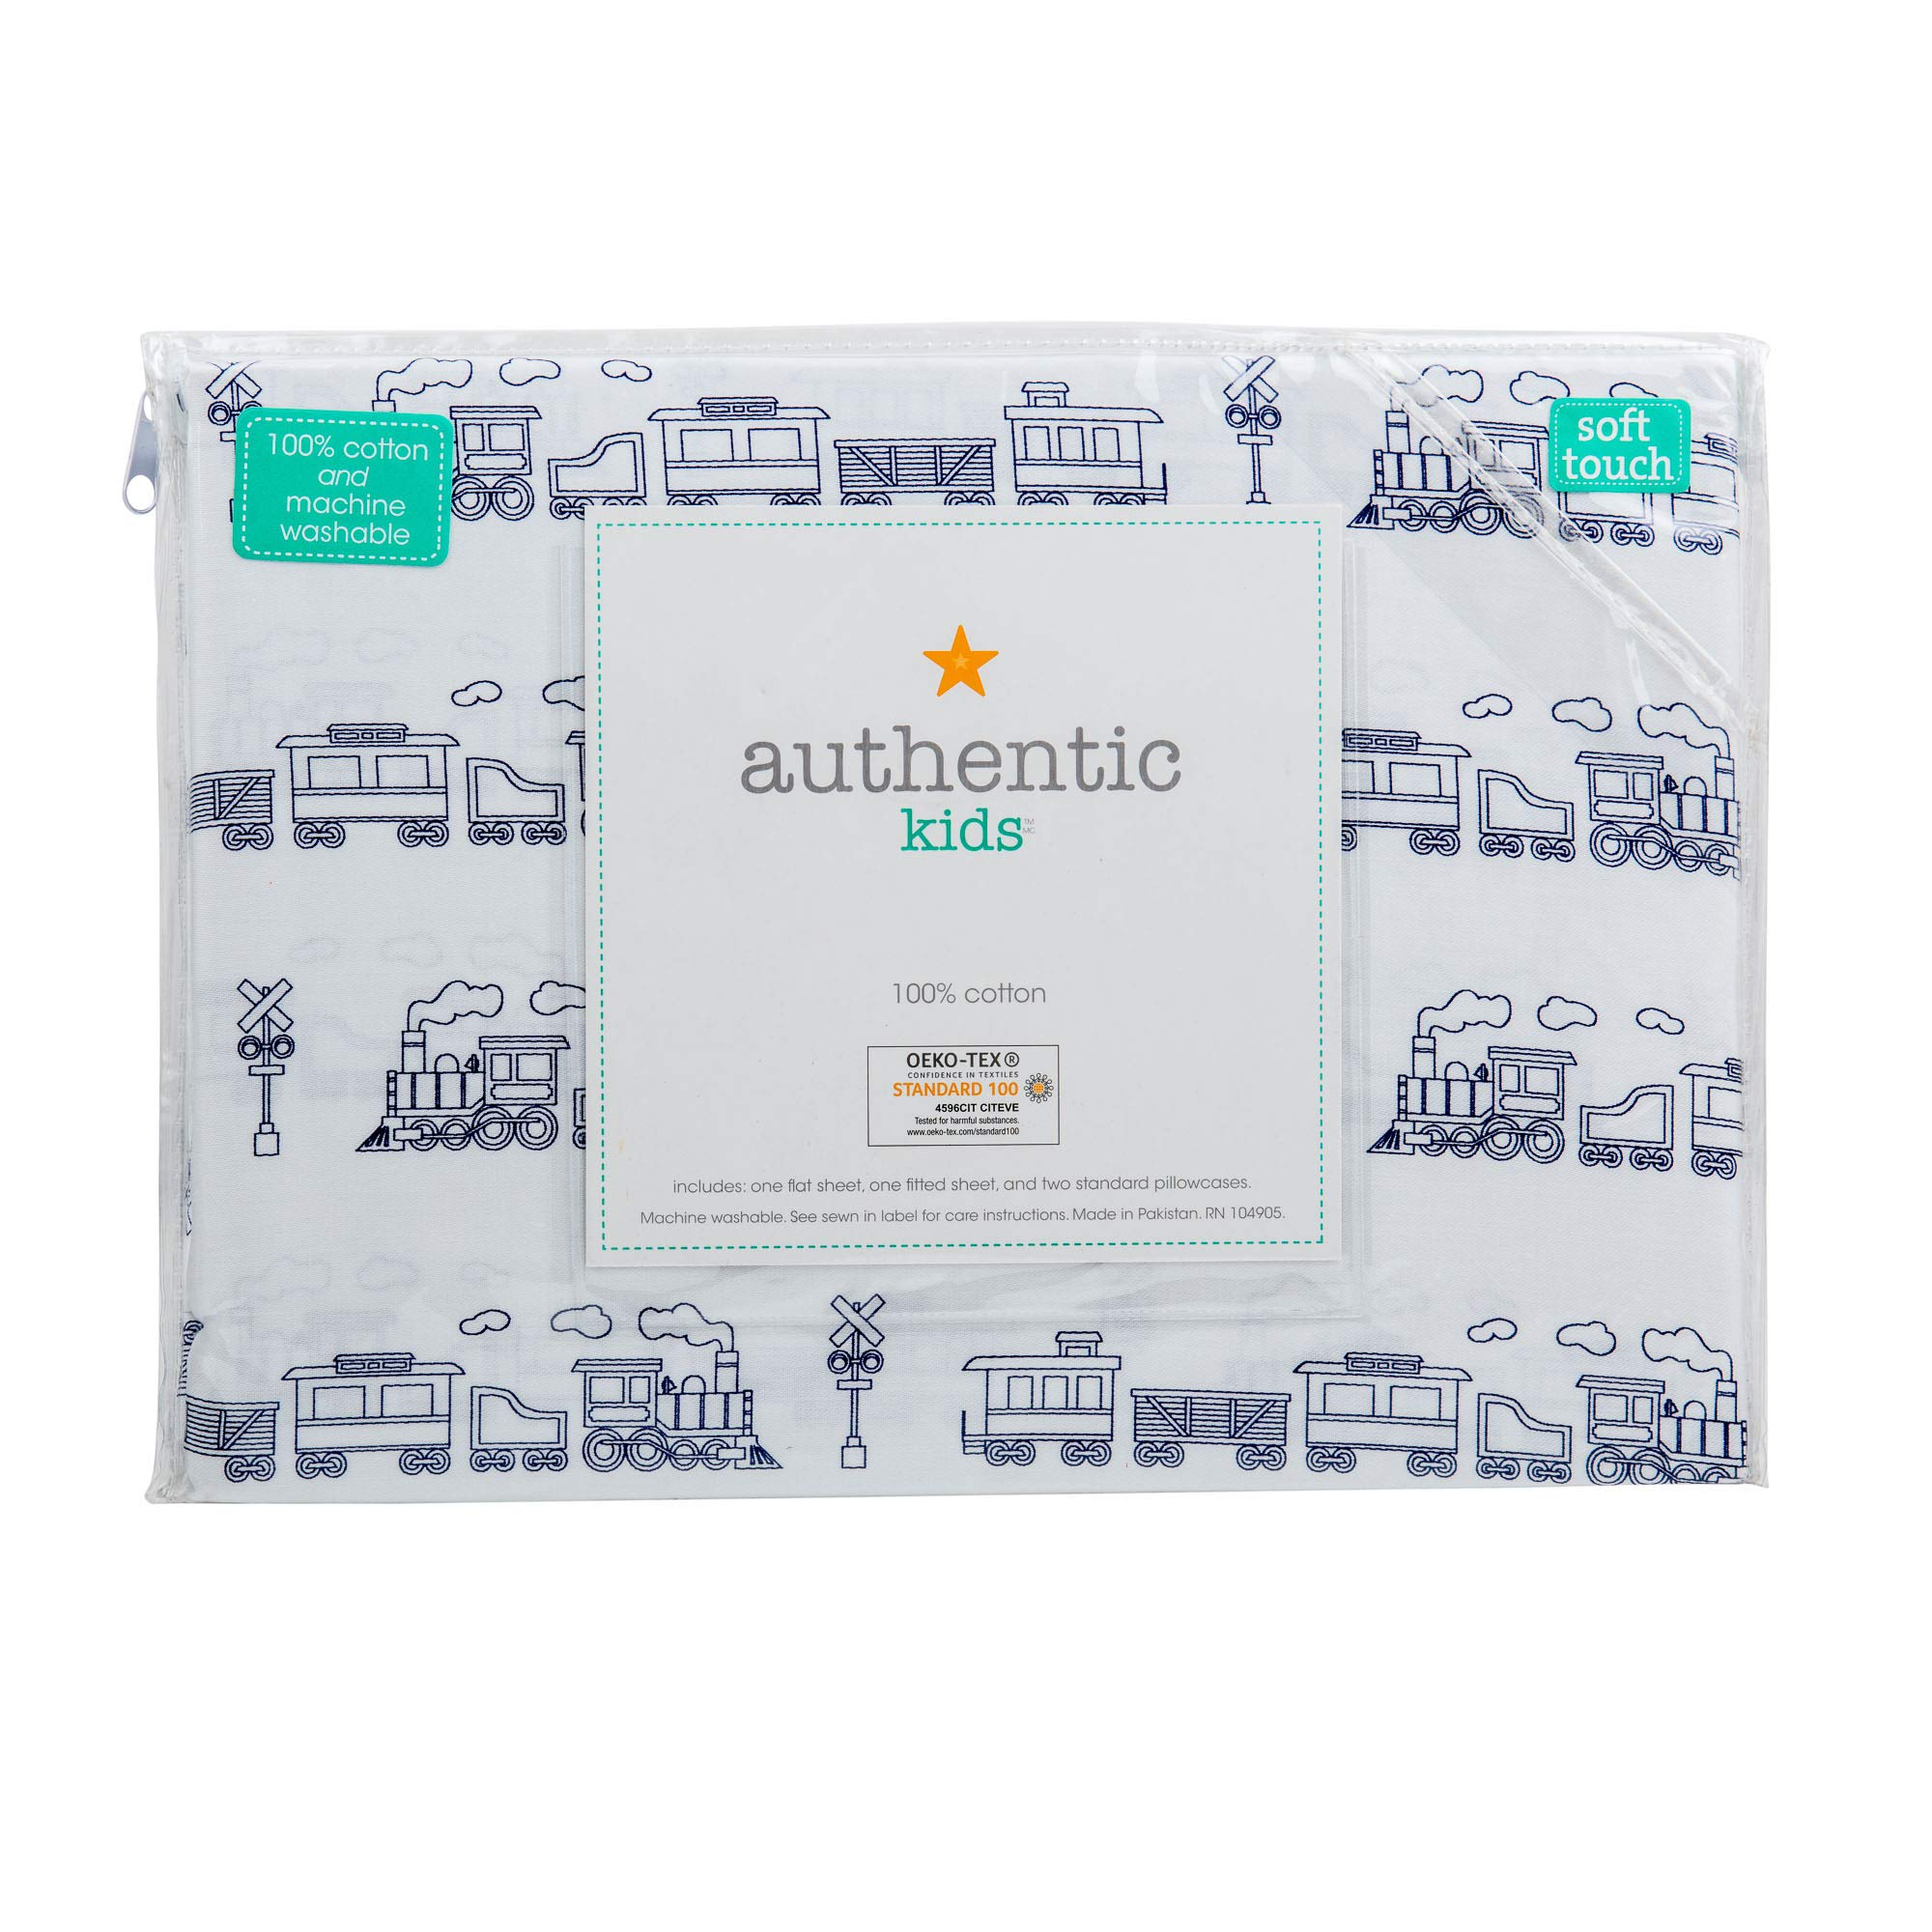 Authentic Kids 4 Piece Double Bed Cotton Sheet Set Trains Cabooses Box Cars Railroads Navy Blue on White Background